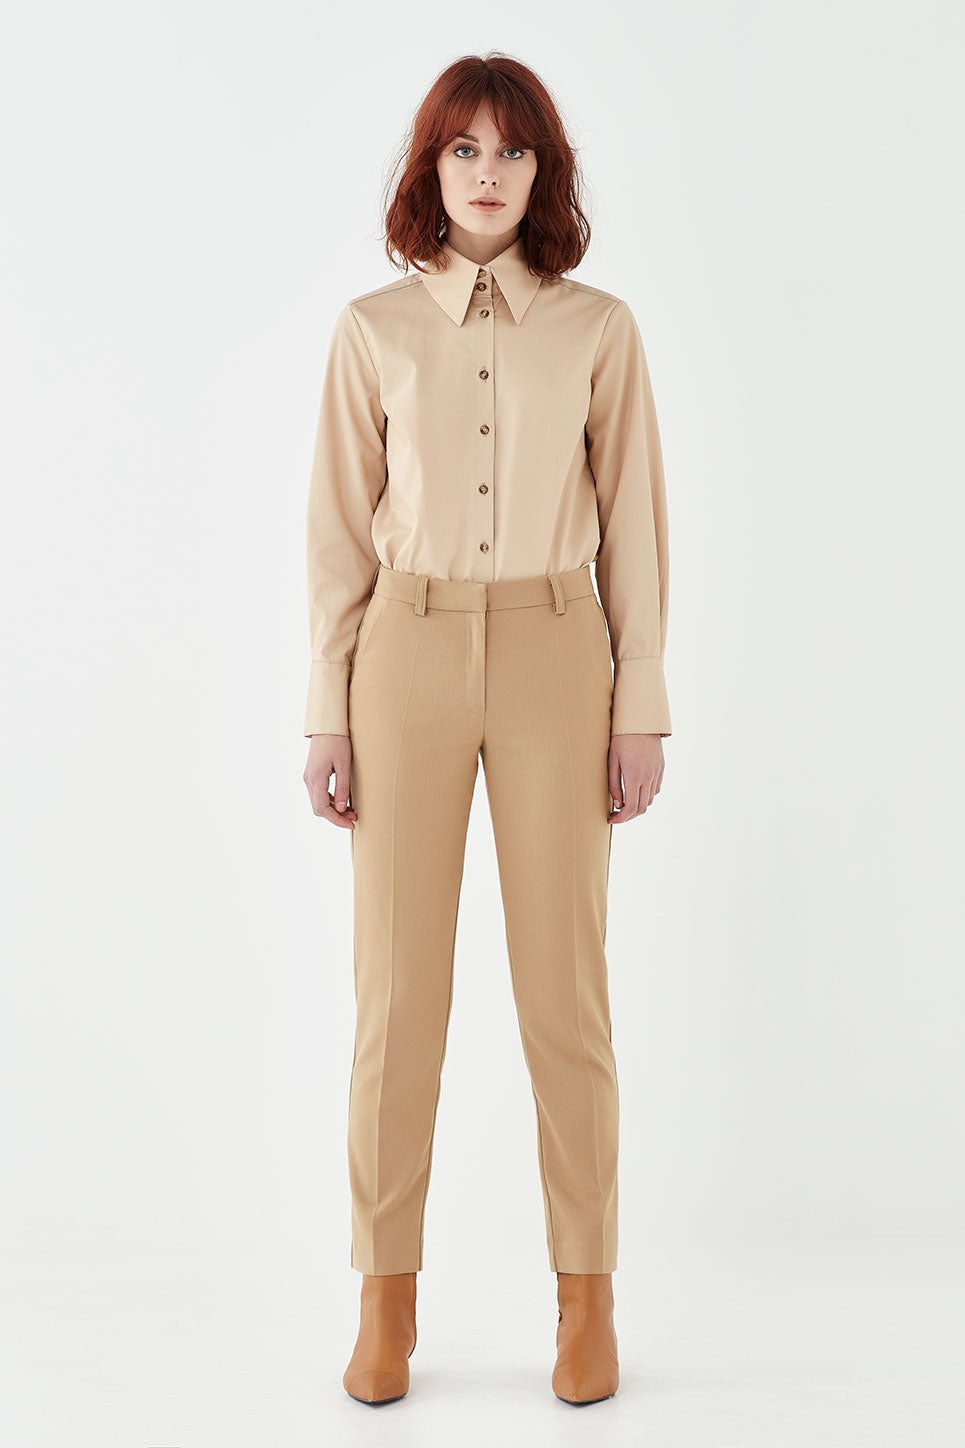 The Stirling Shirt in Tan